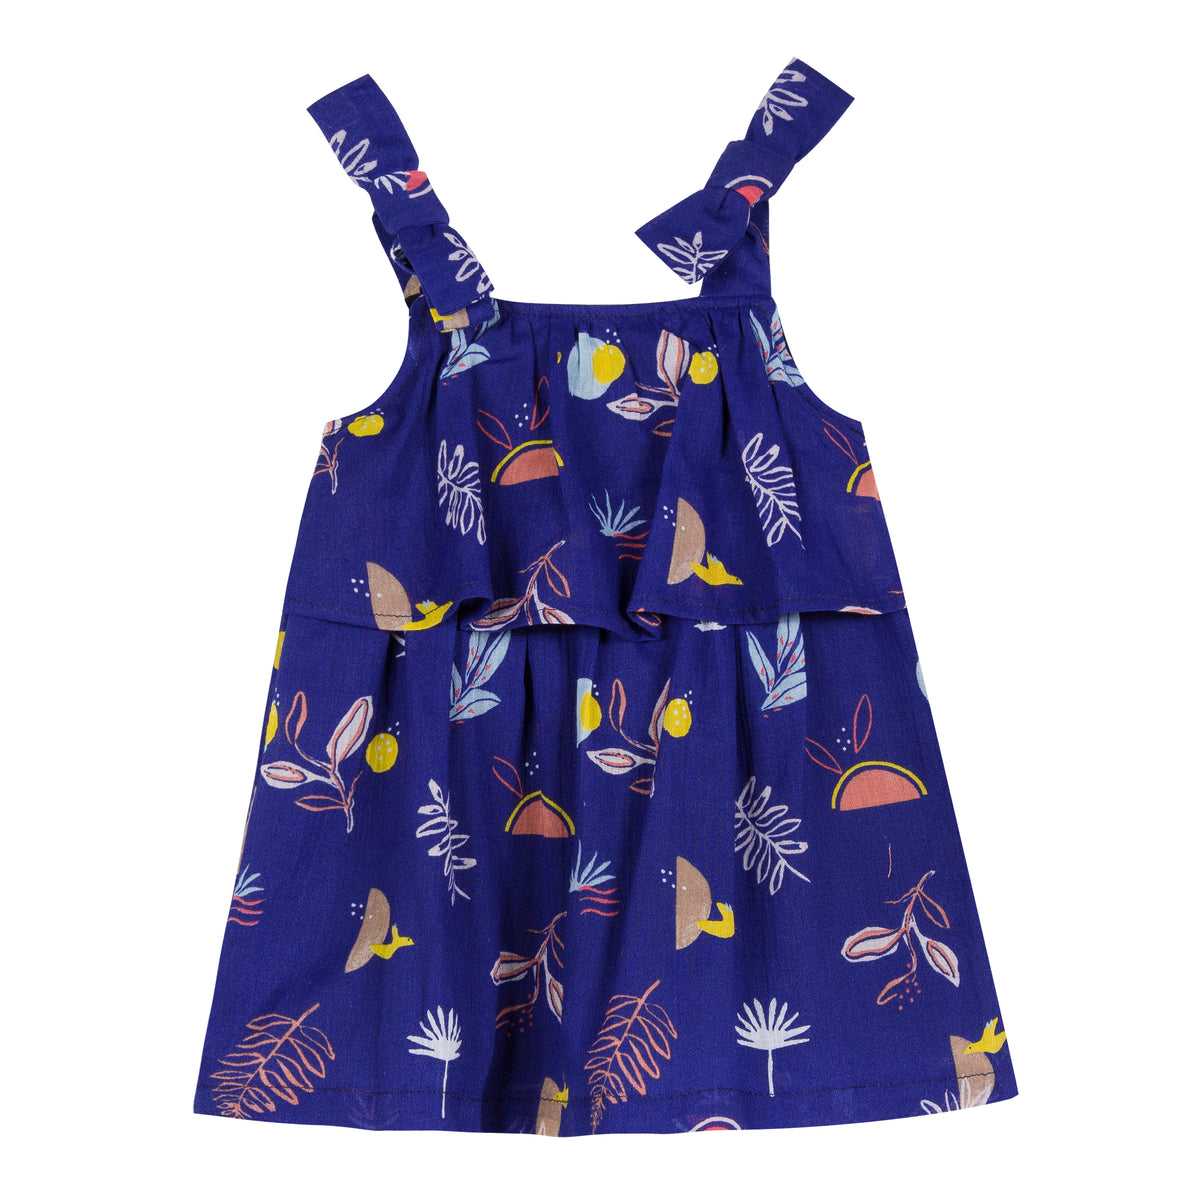 Ultramarine cotton-crepe dress is printed with a cheerful, exotic pattern of birds and tropical plants all over. Designed by Jean Bourget.